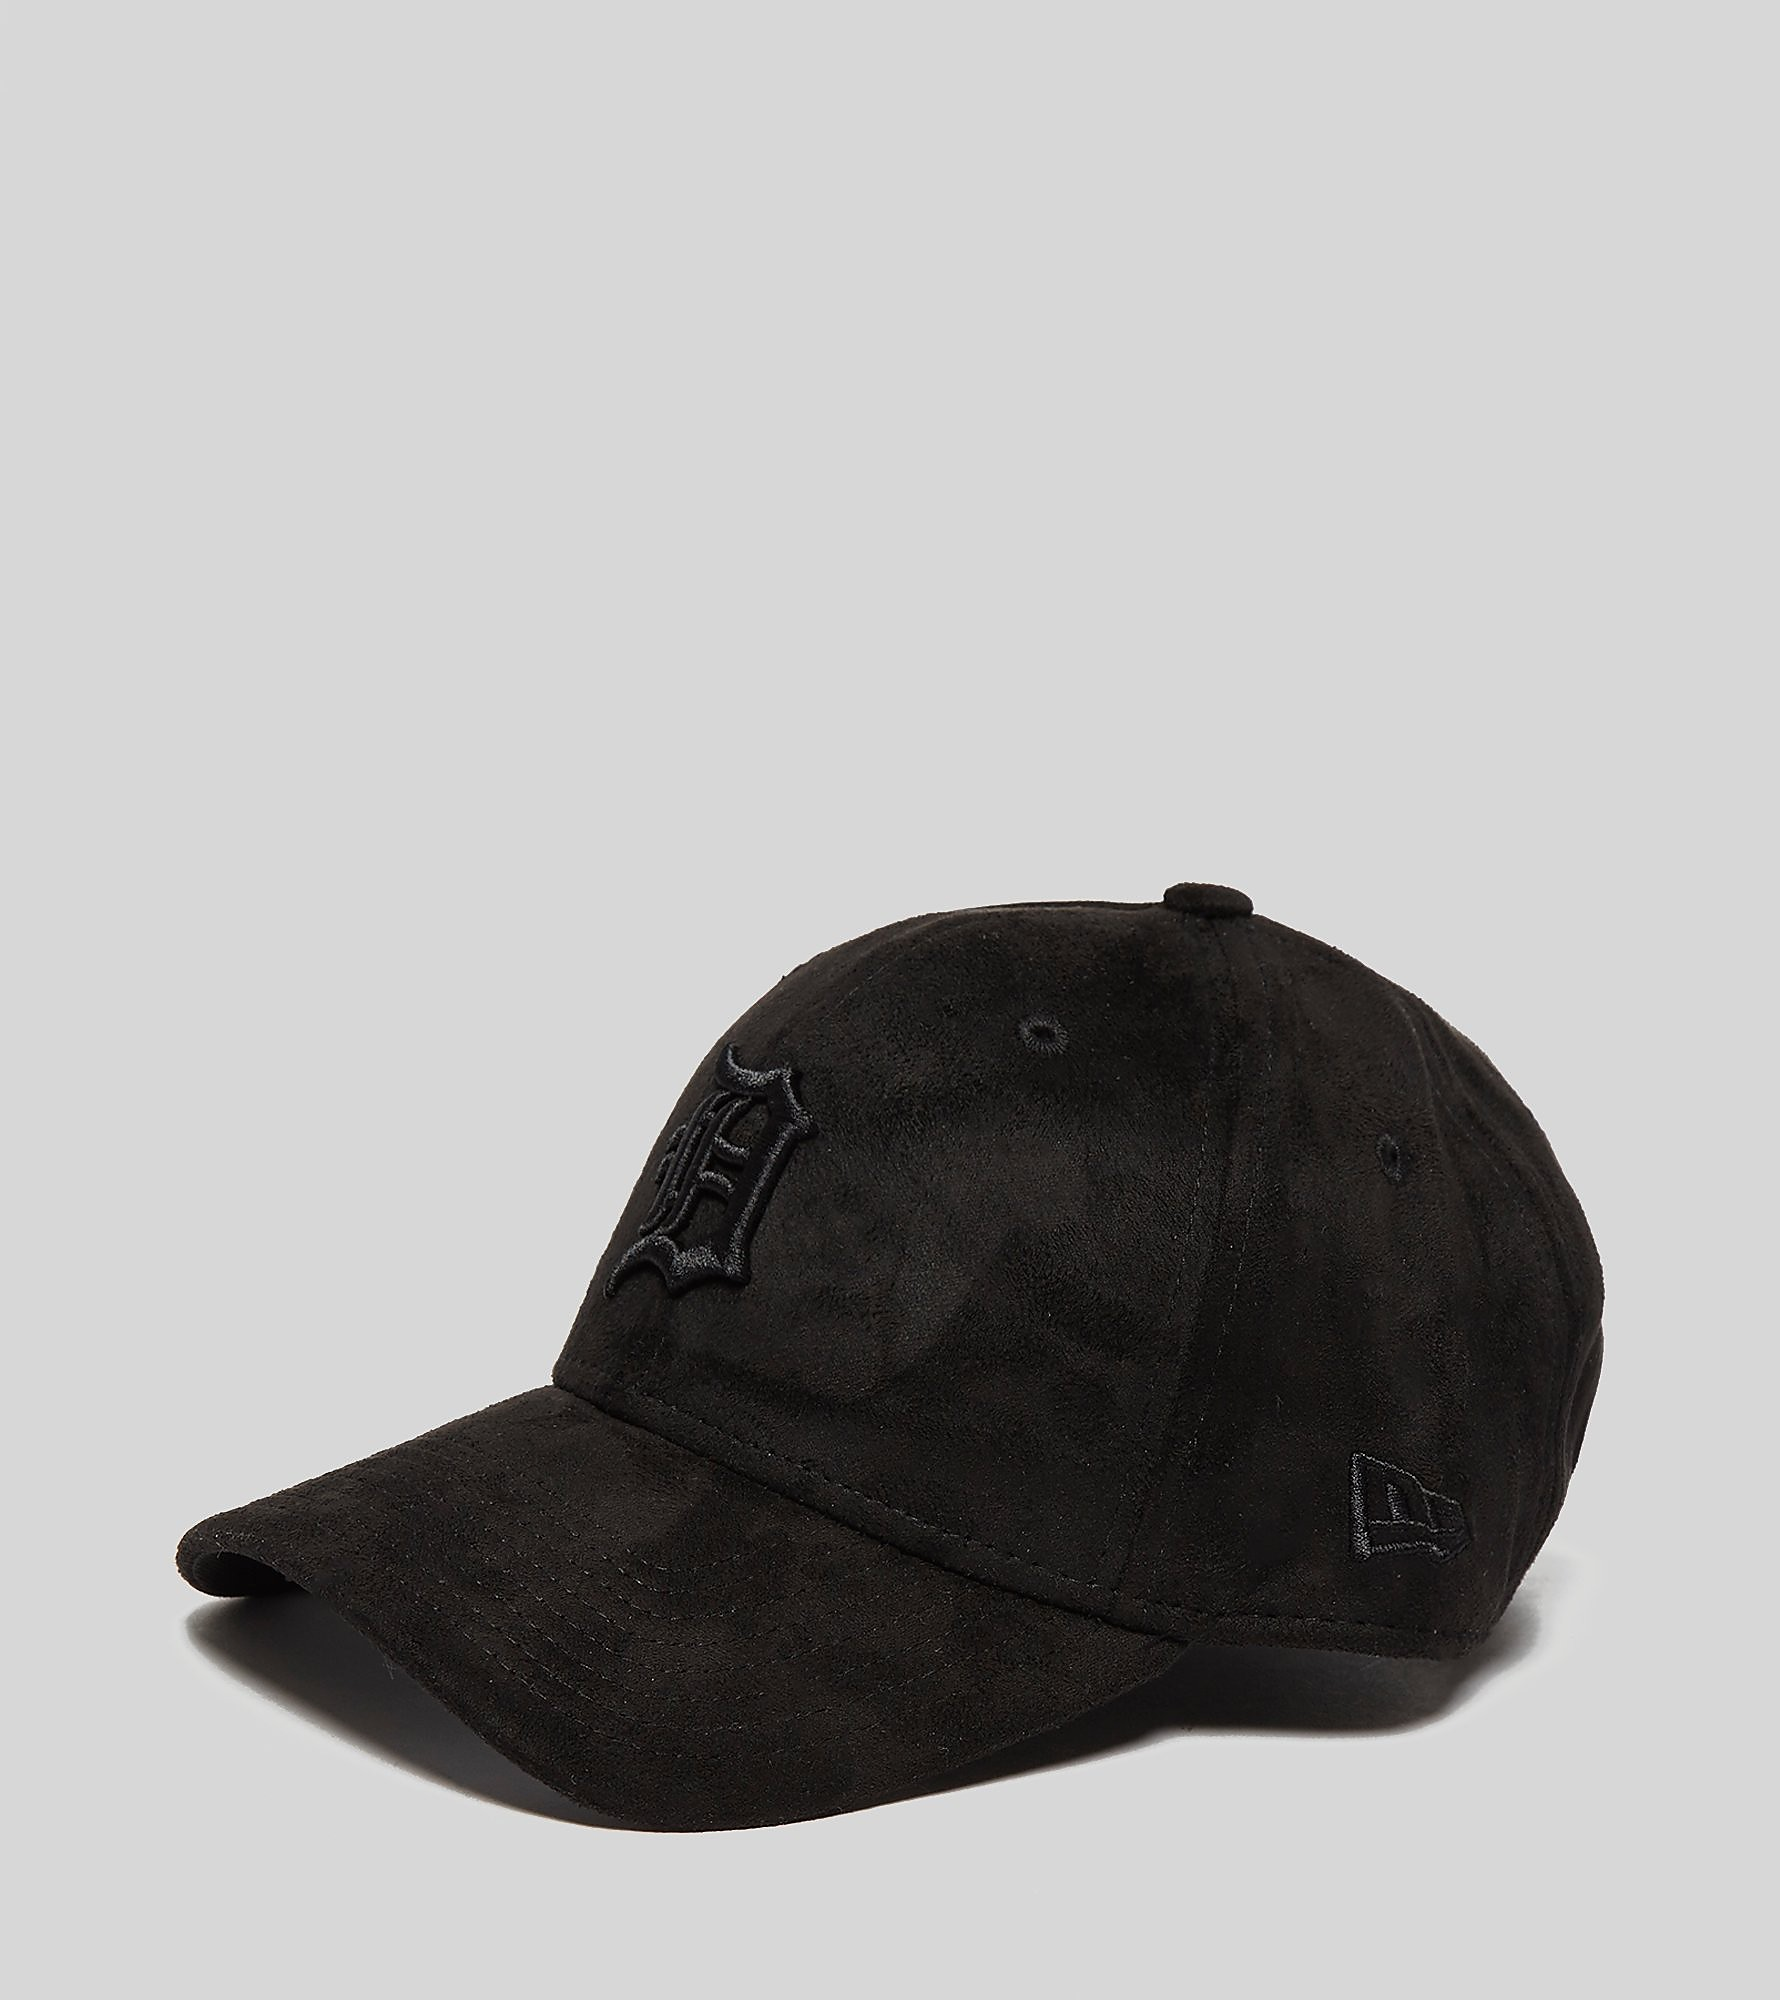 New Era 9TWENTY Tone Suede Strapback Cap - size? Exclusive